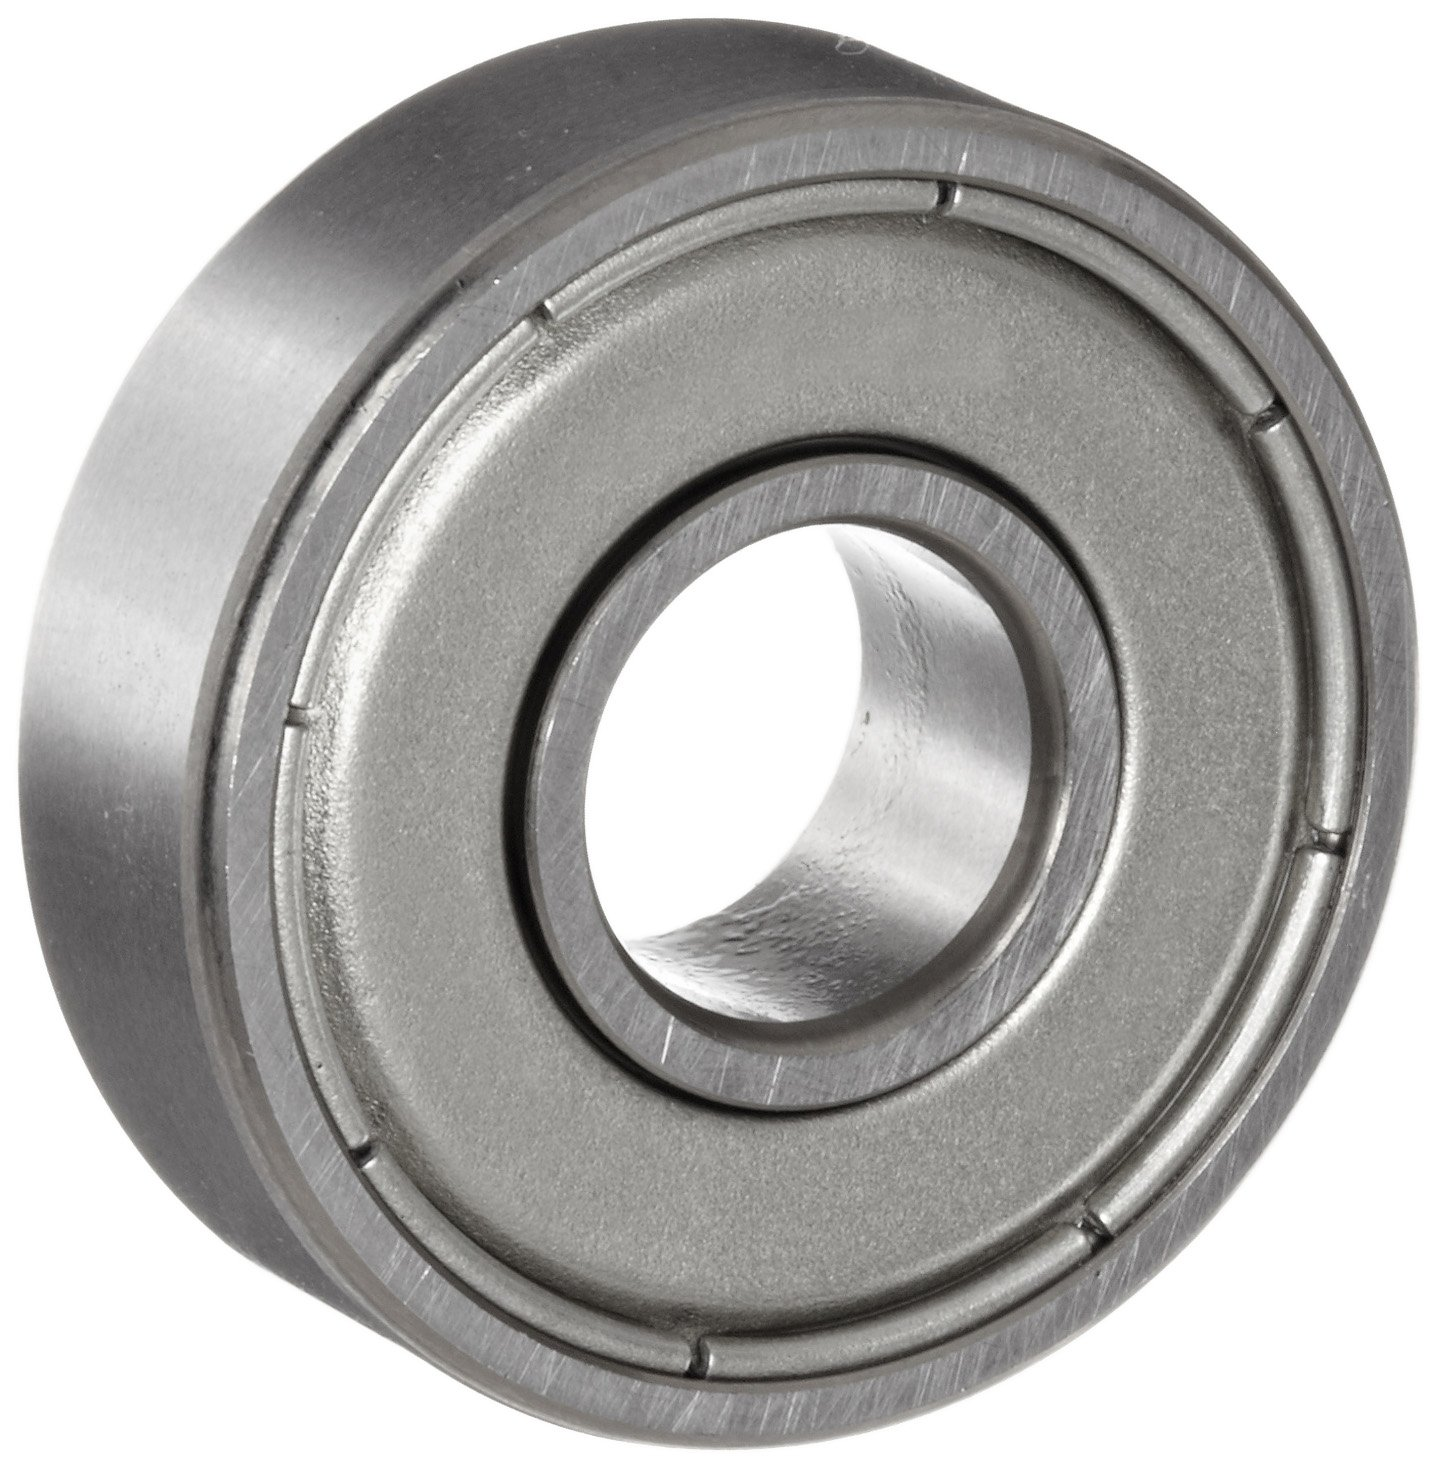 Details about  /Ball Bearing Deep Groove Steel Sealed Ball Bearings 608RS Z3V3 Great Products